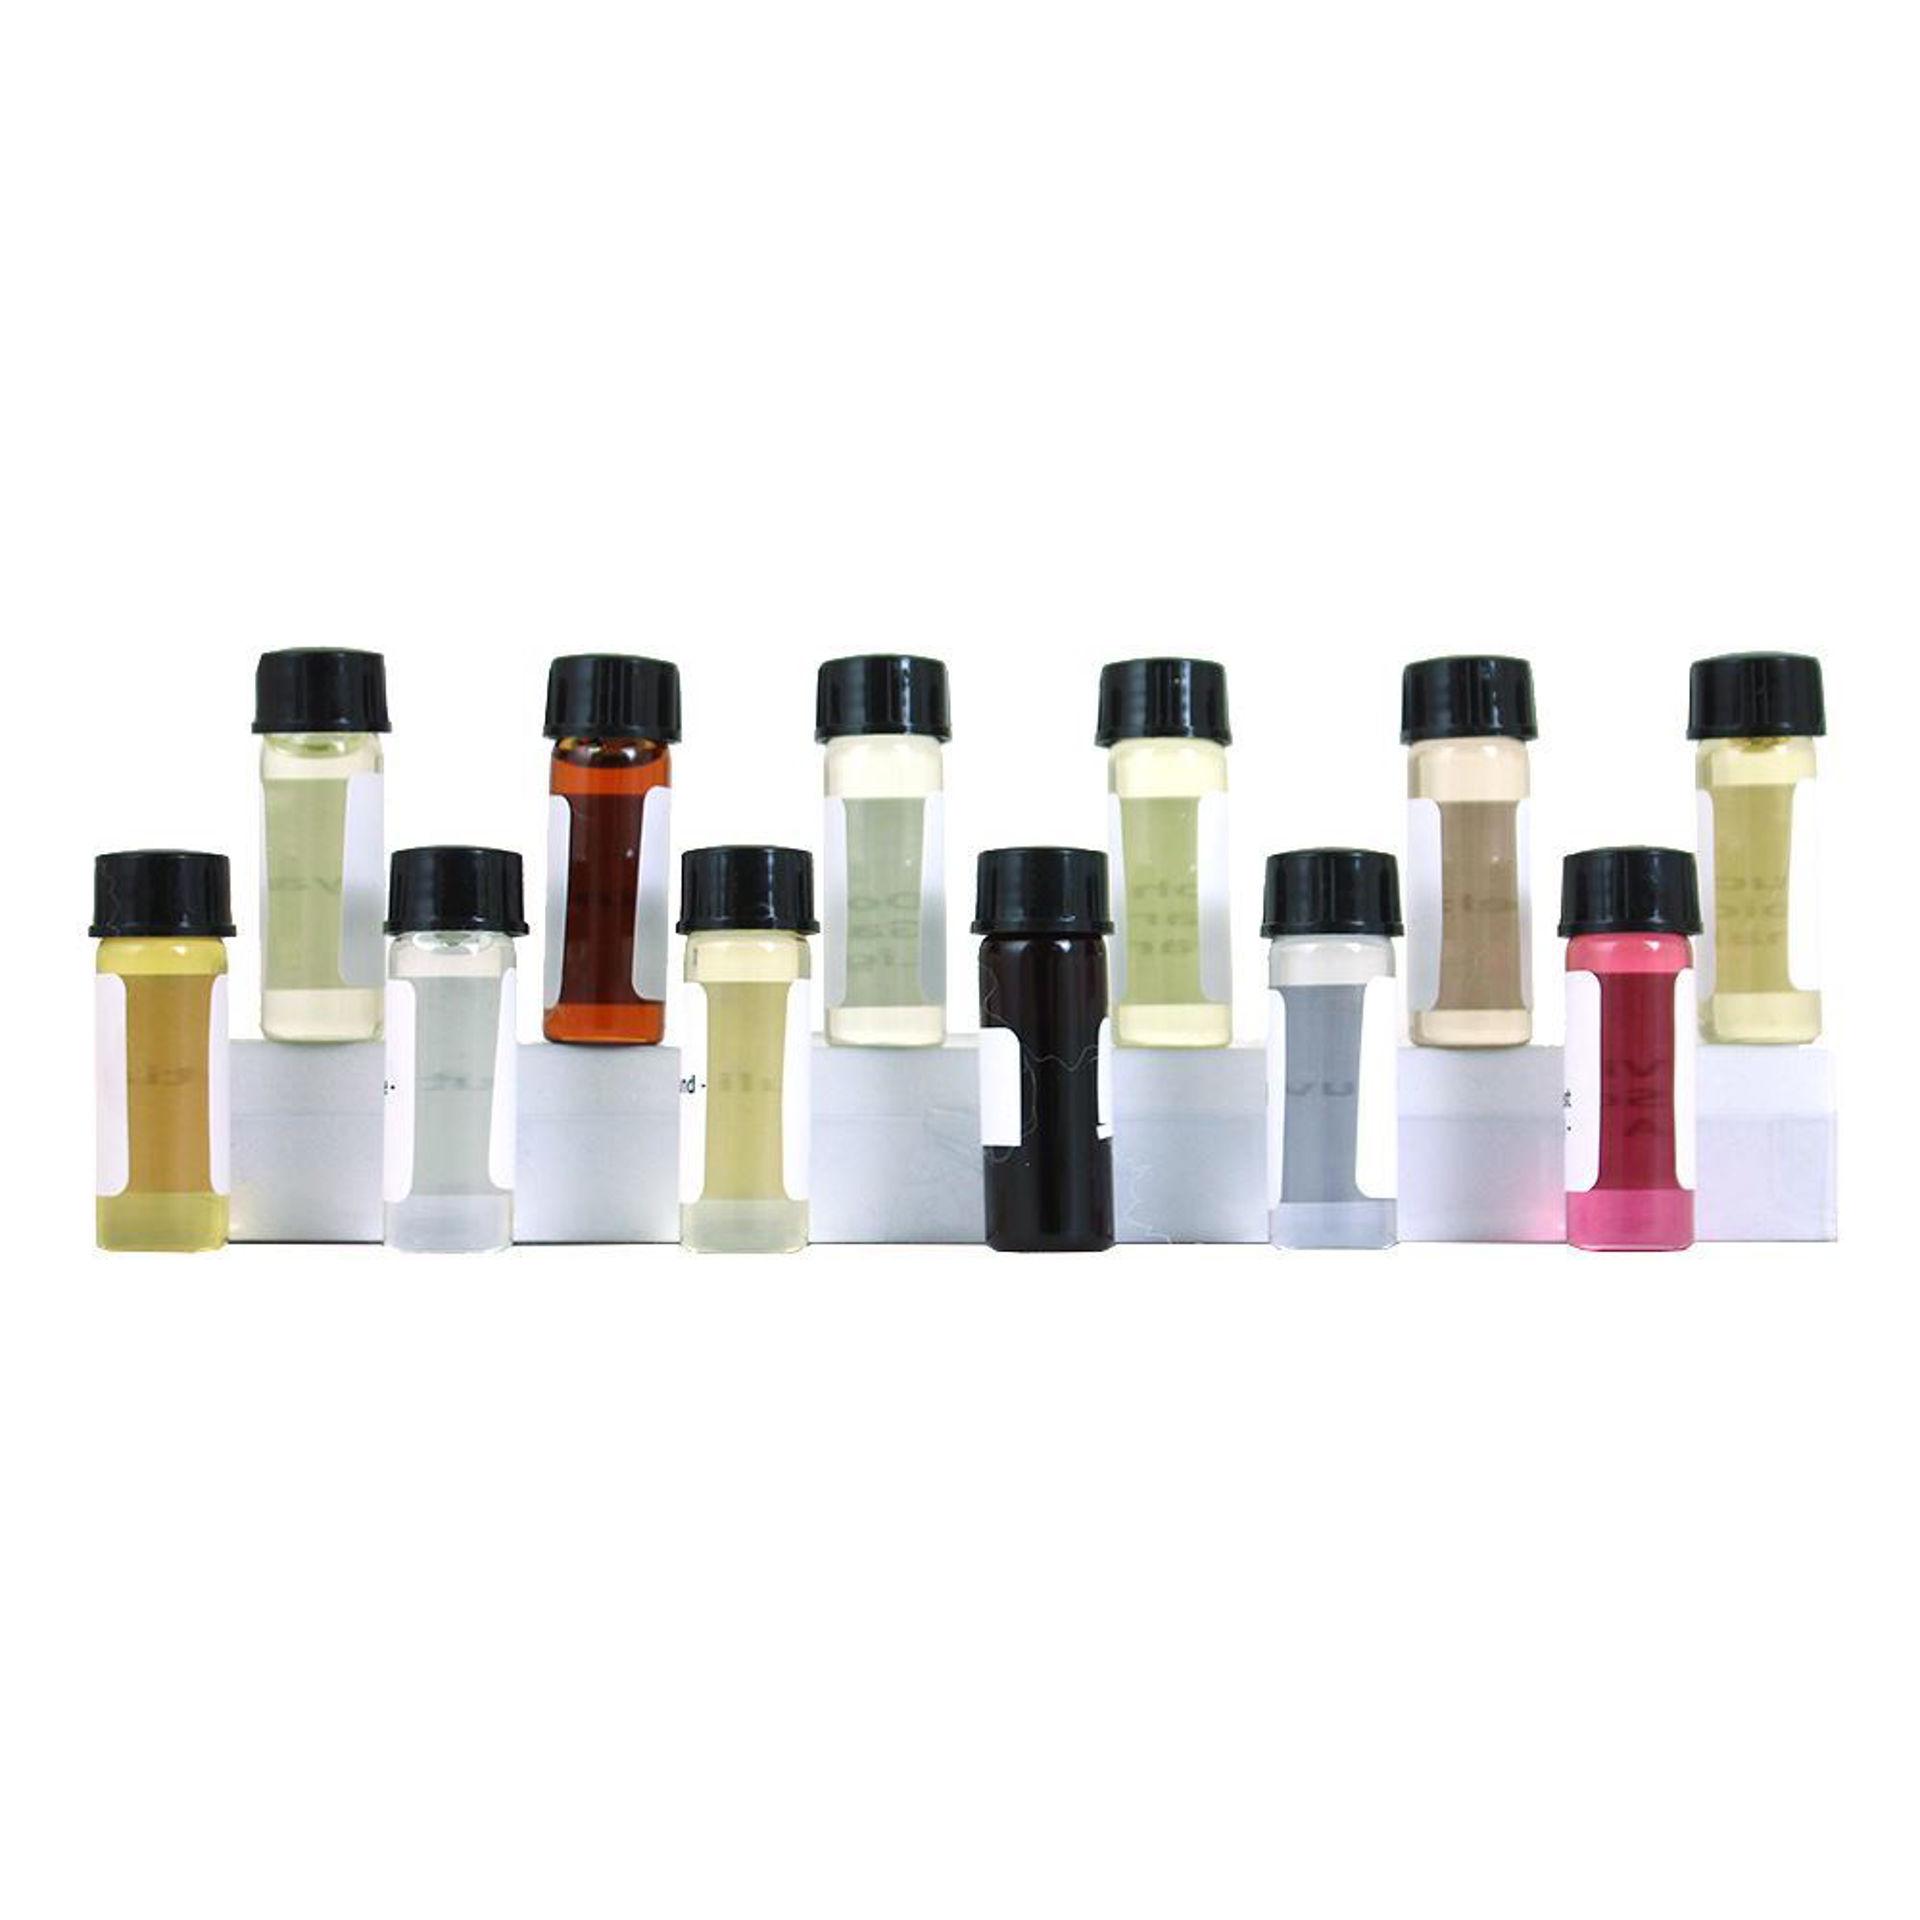 Picture of Set Of 12 Sample Oils - Dram SET-B